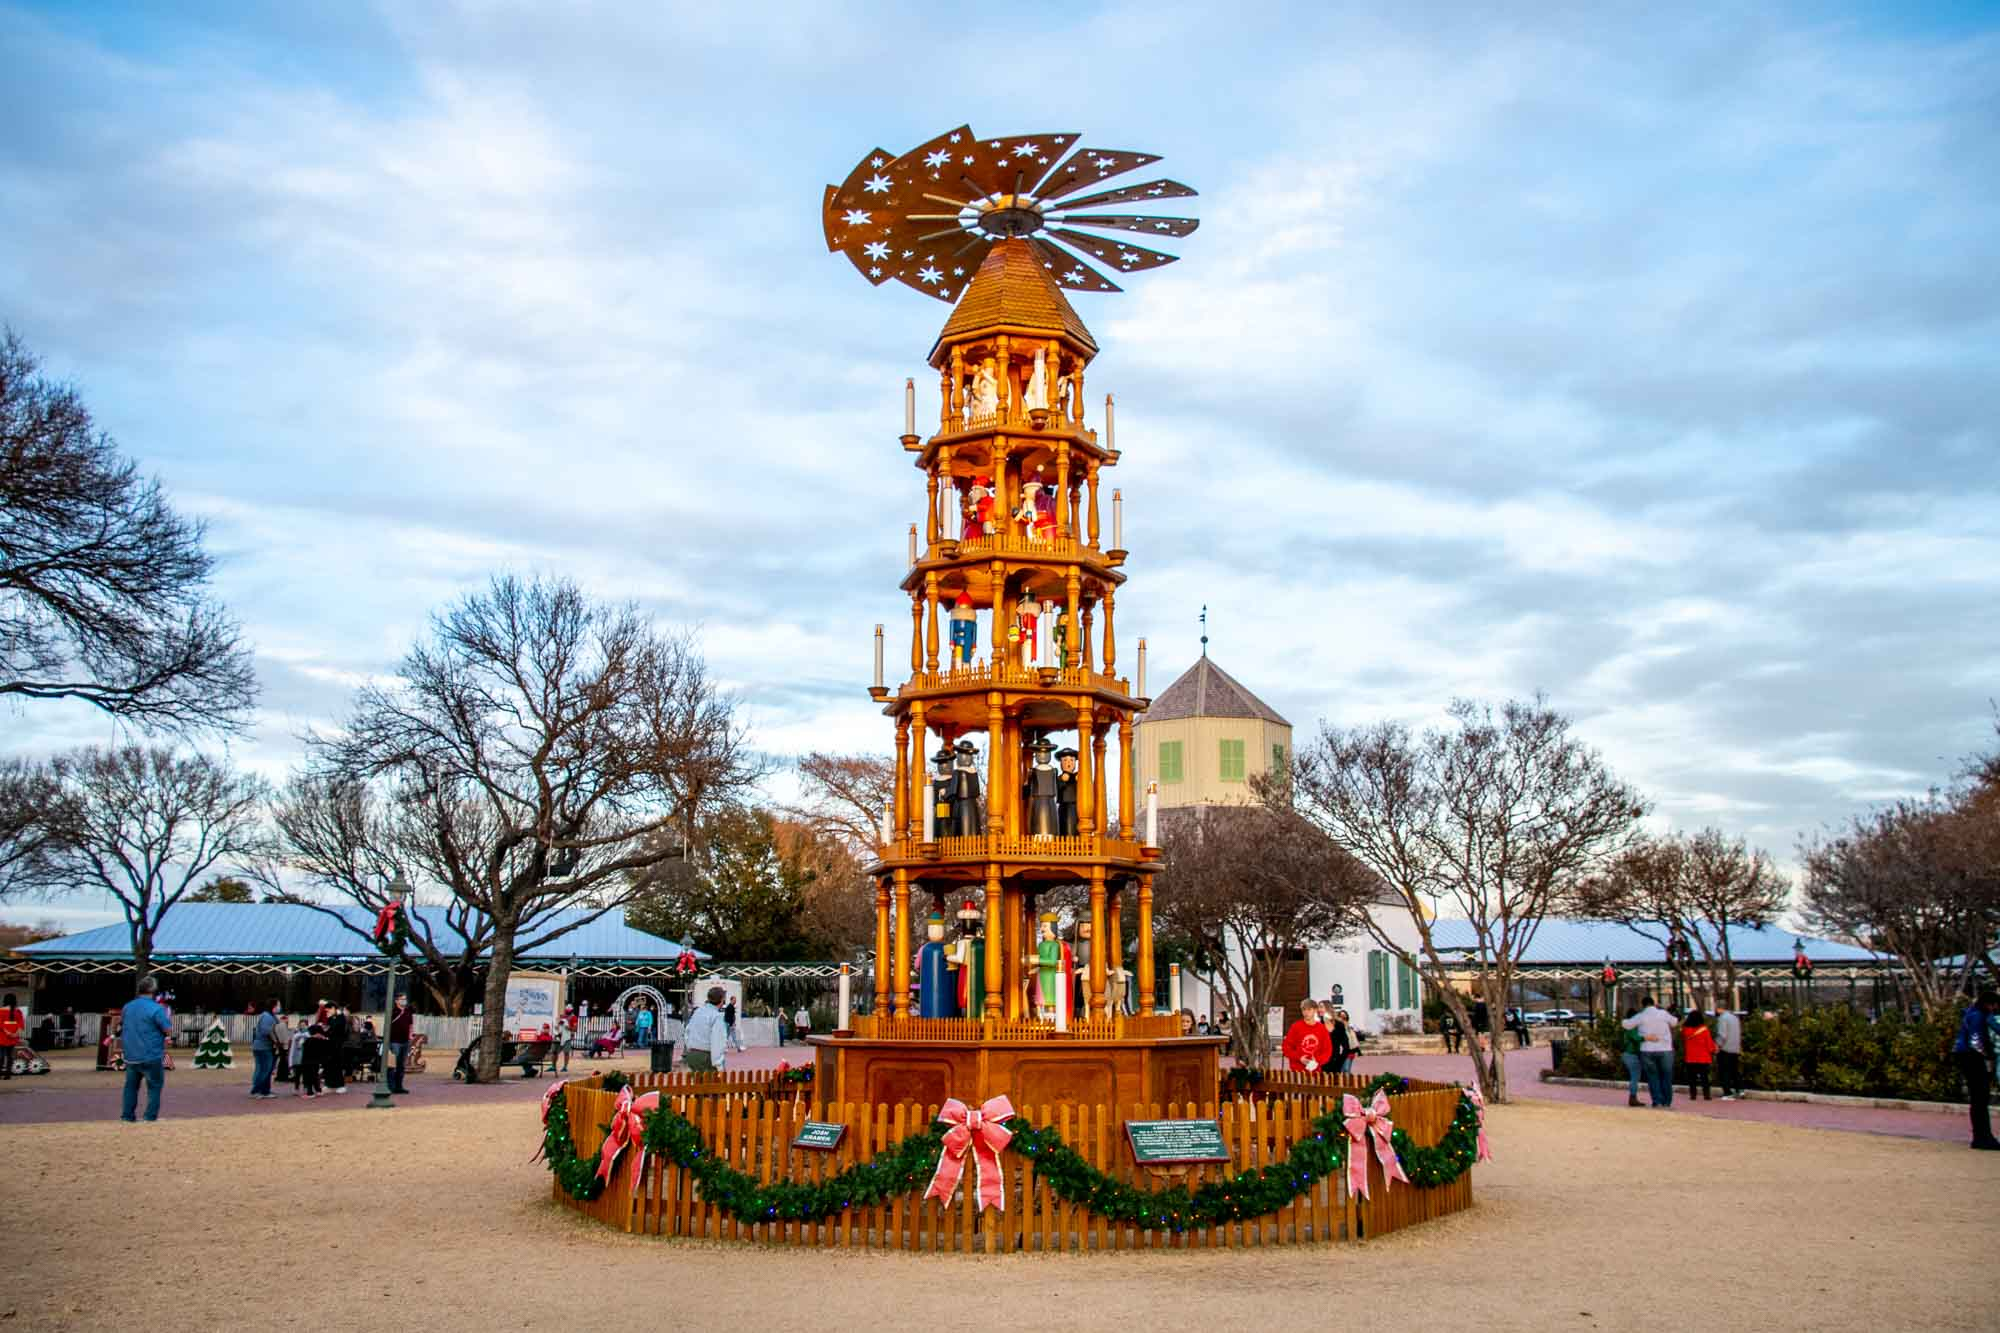 German Christmas pyramid with a propeller top in town square